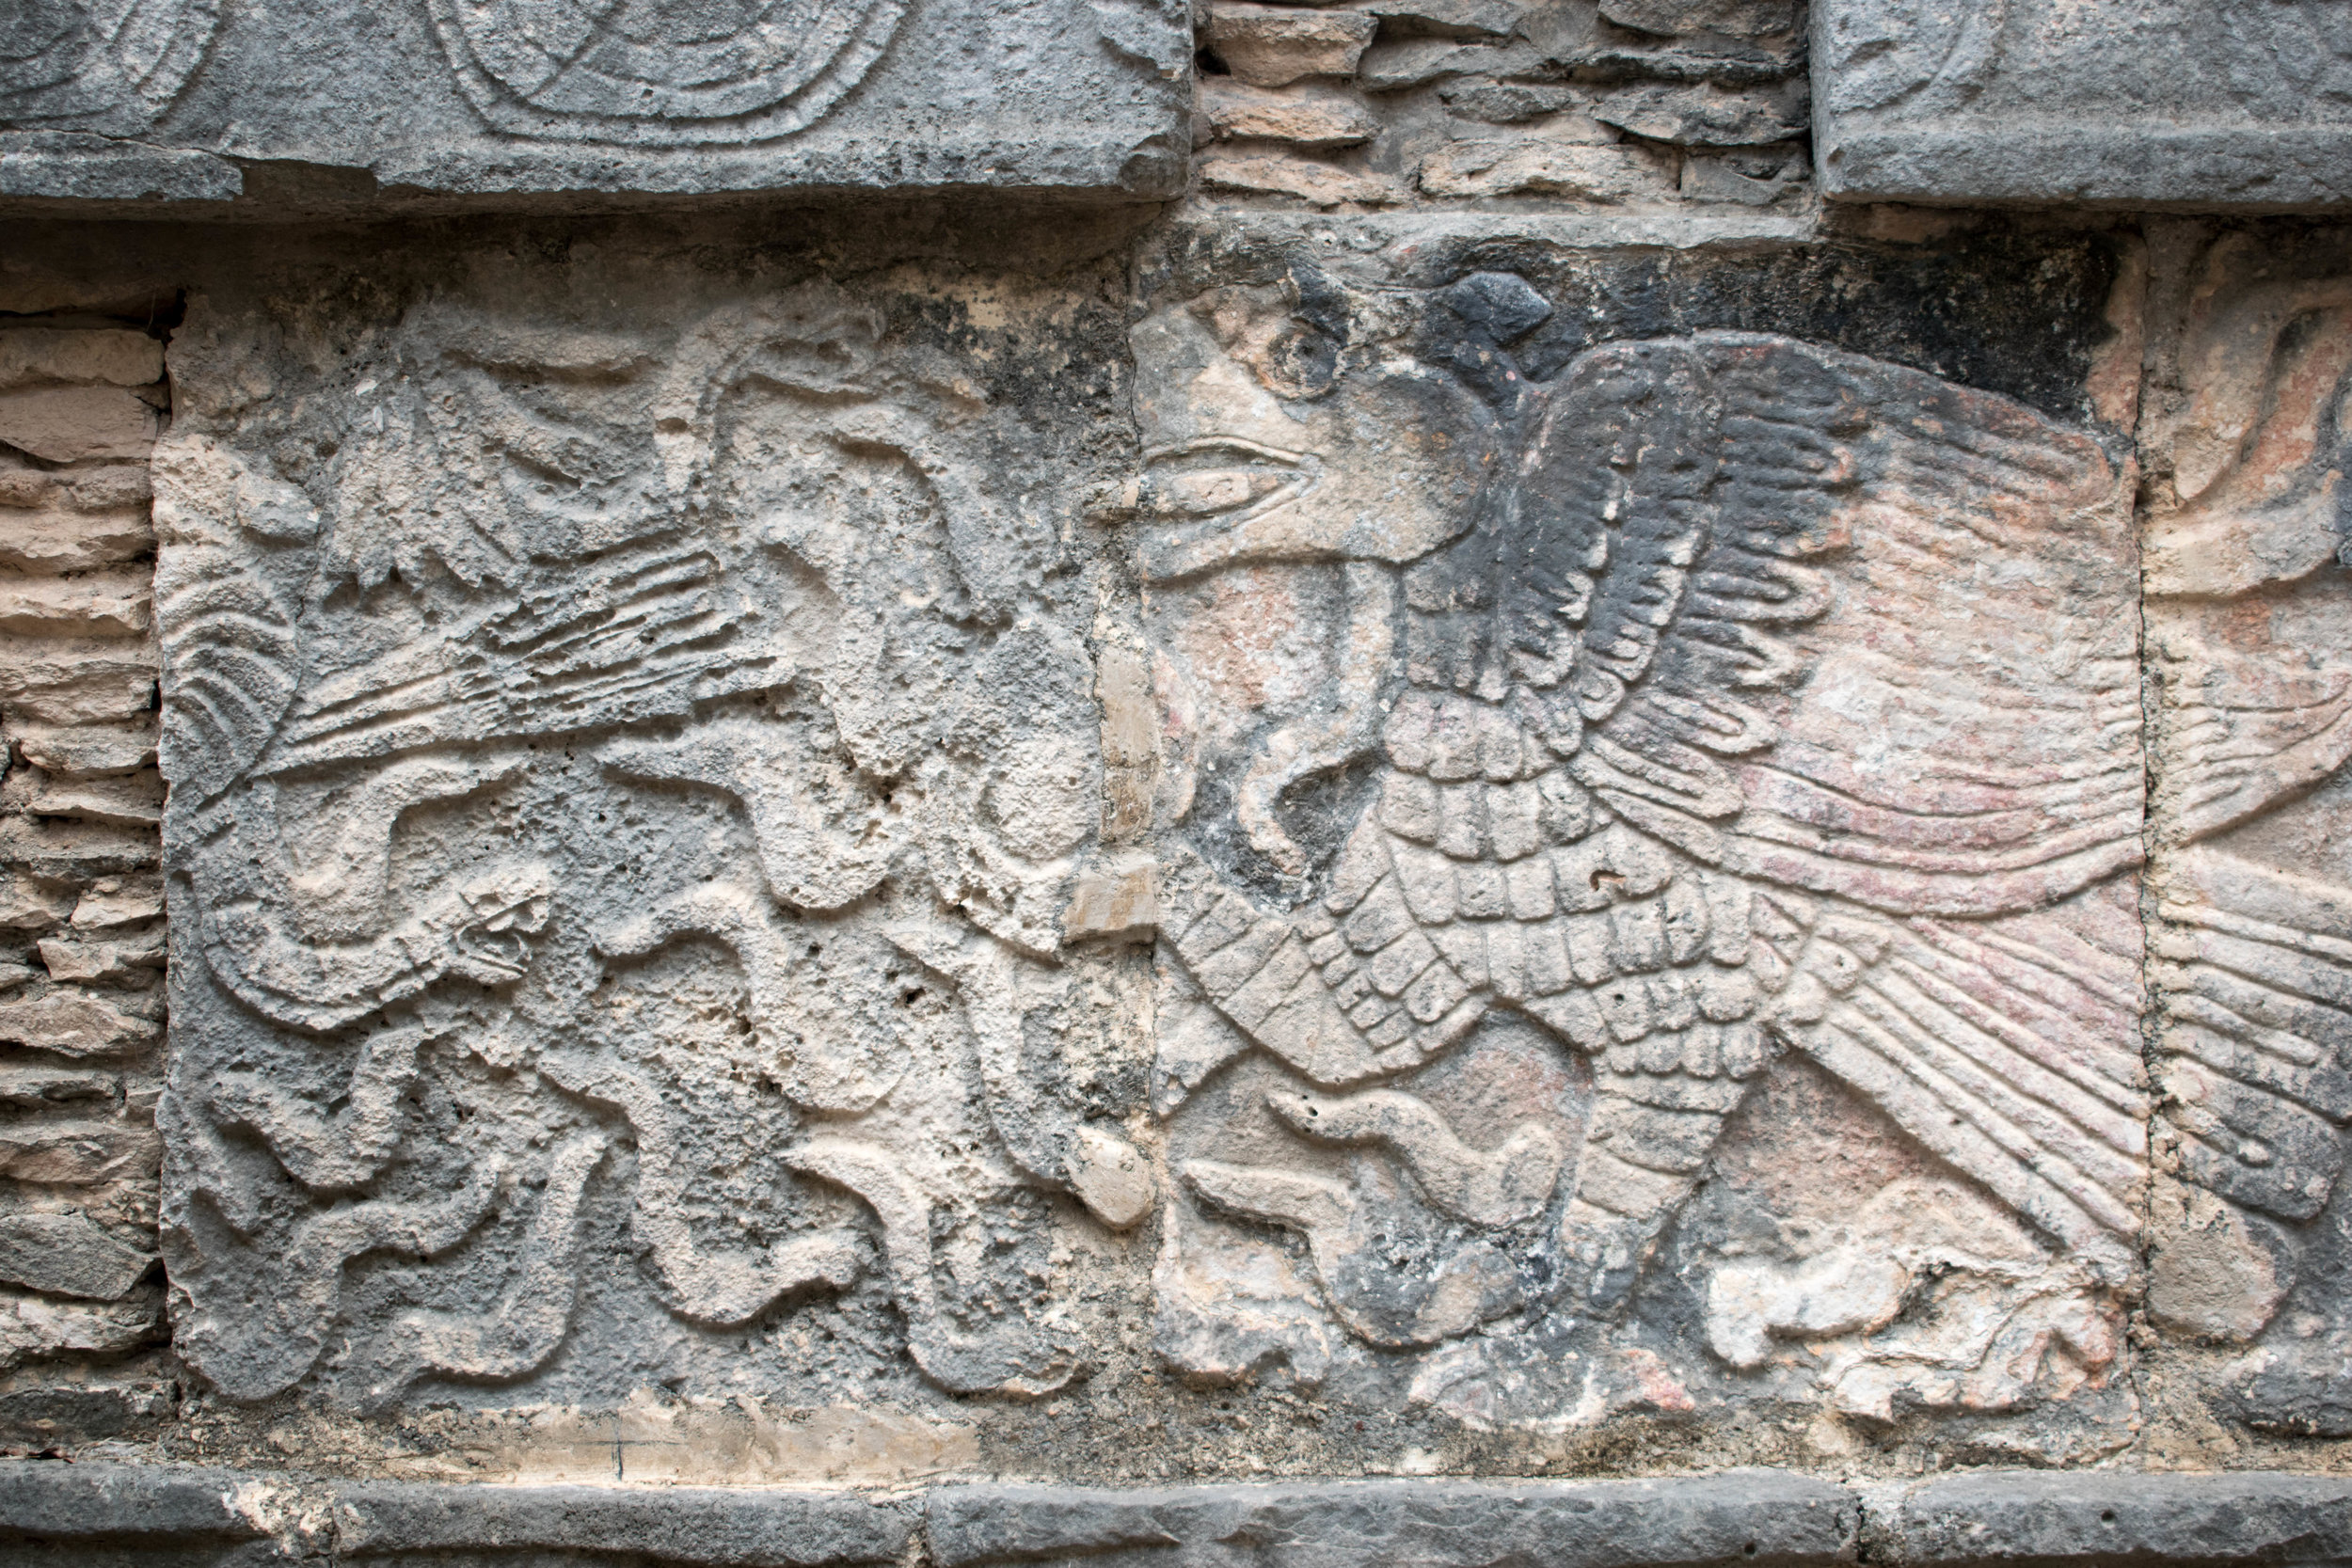 Stone Carvings at Chichén Itzá in Mexico